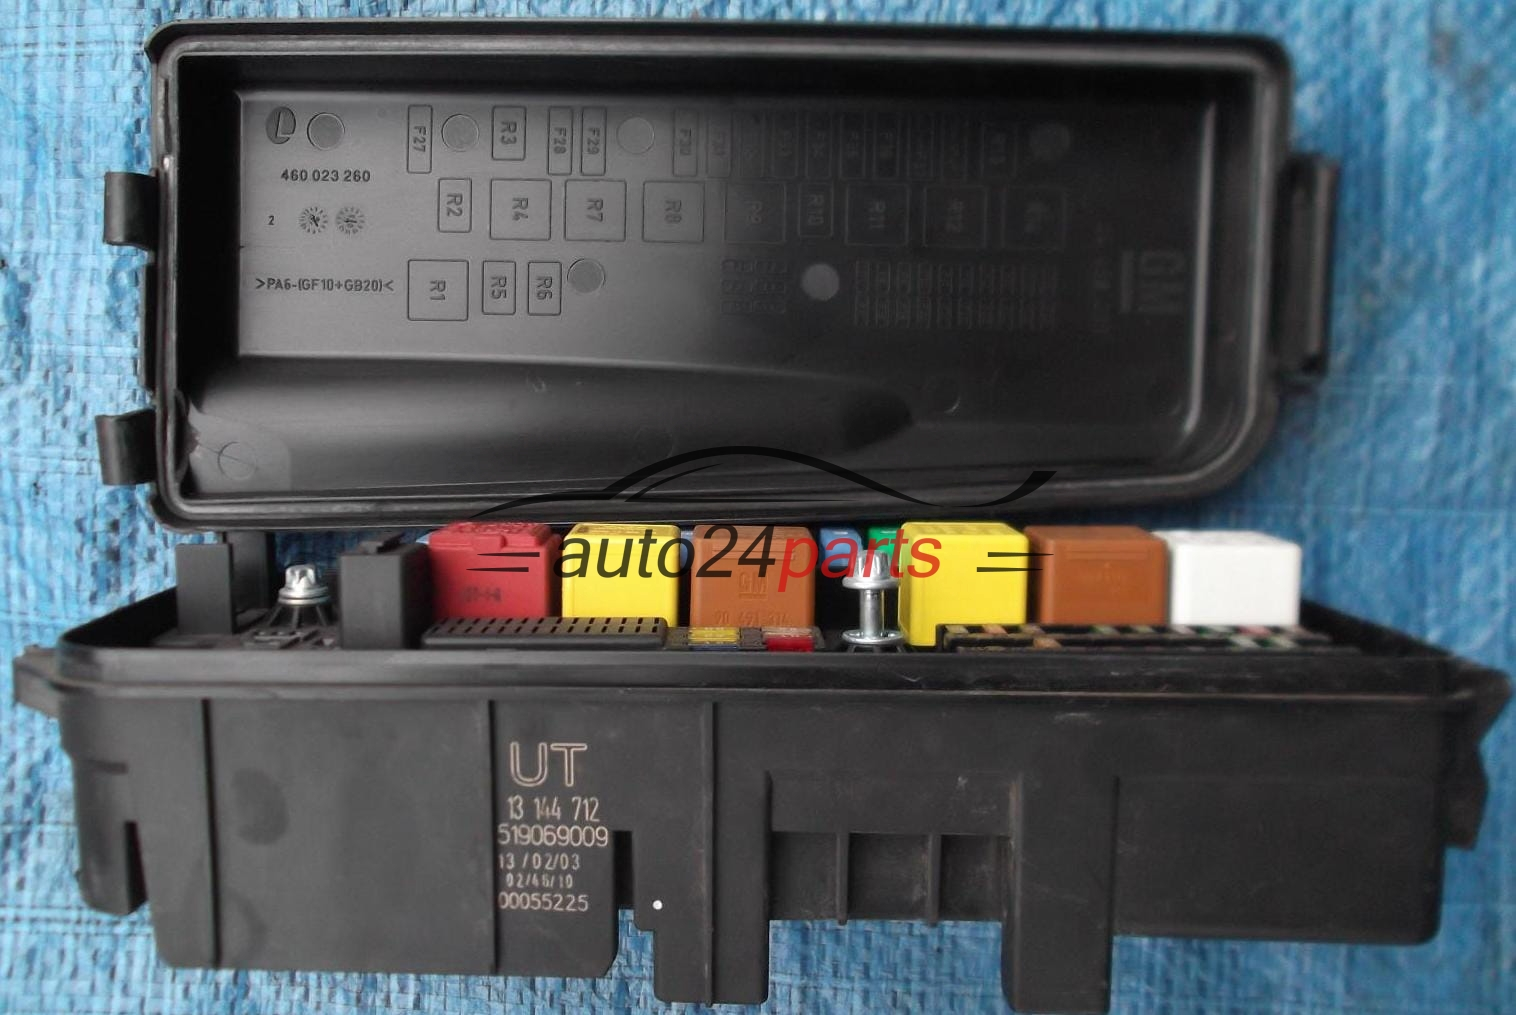 Opel Signum Fuse Box Wiring Diagrams Vauxhall Astra 2006 Relay Electrical Comfort Control Module Body